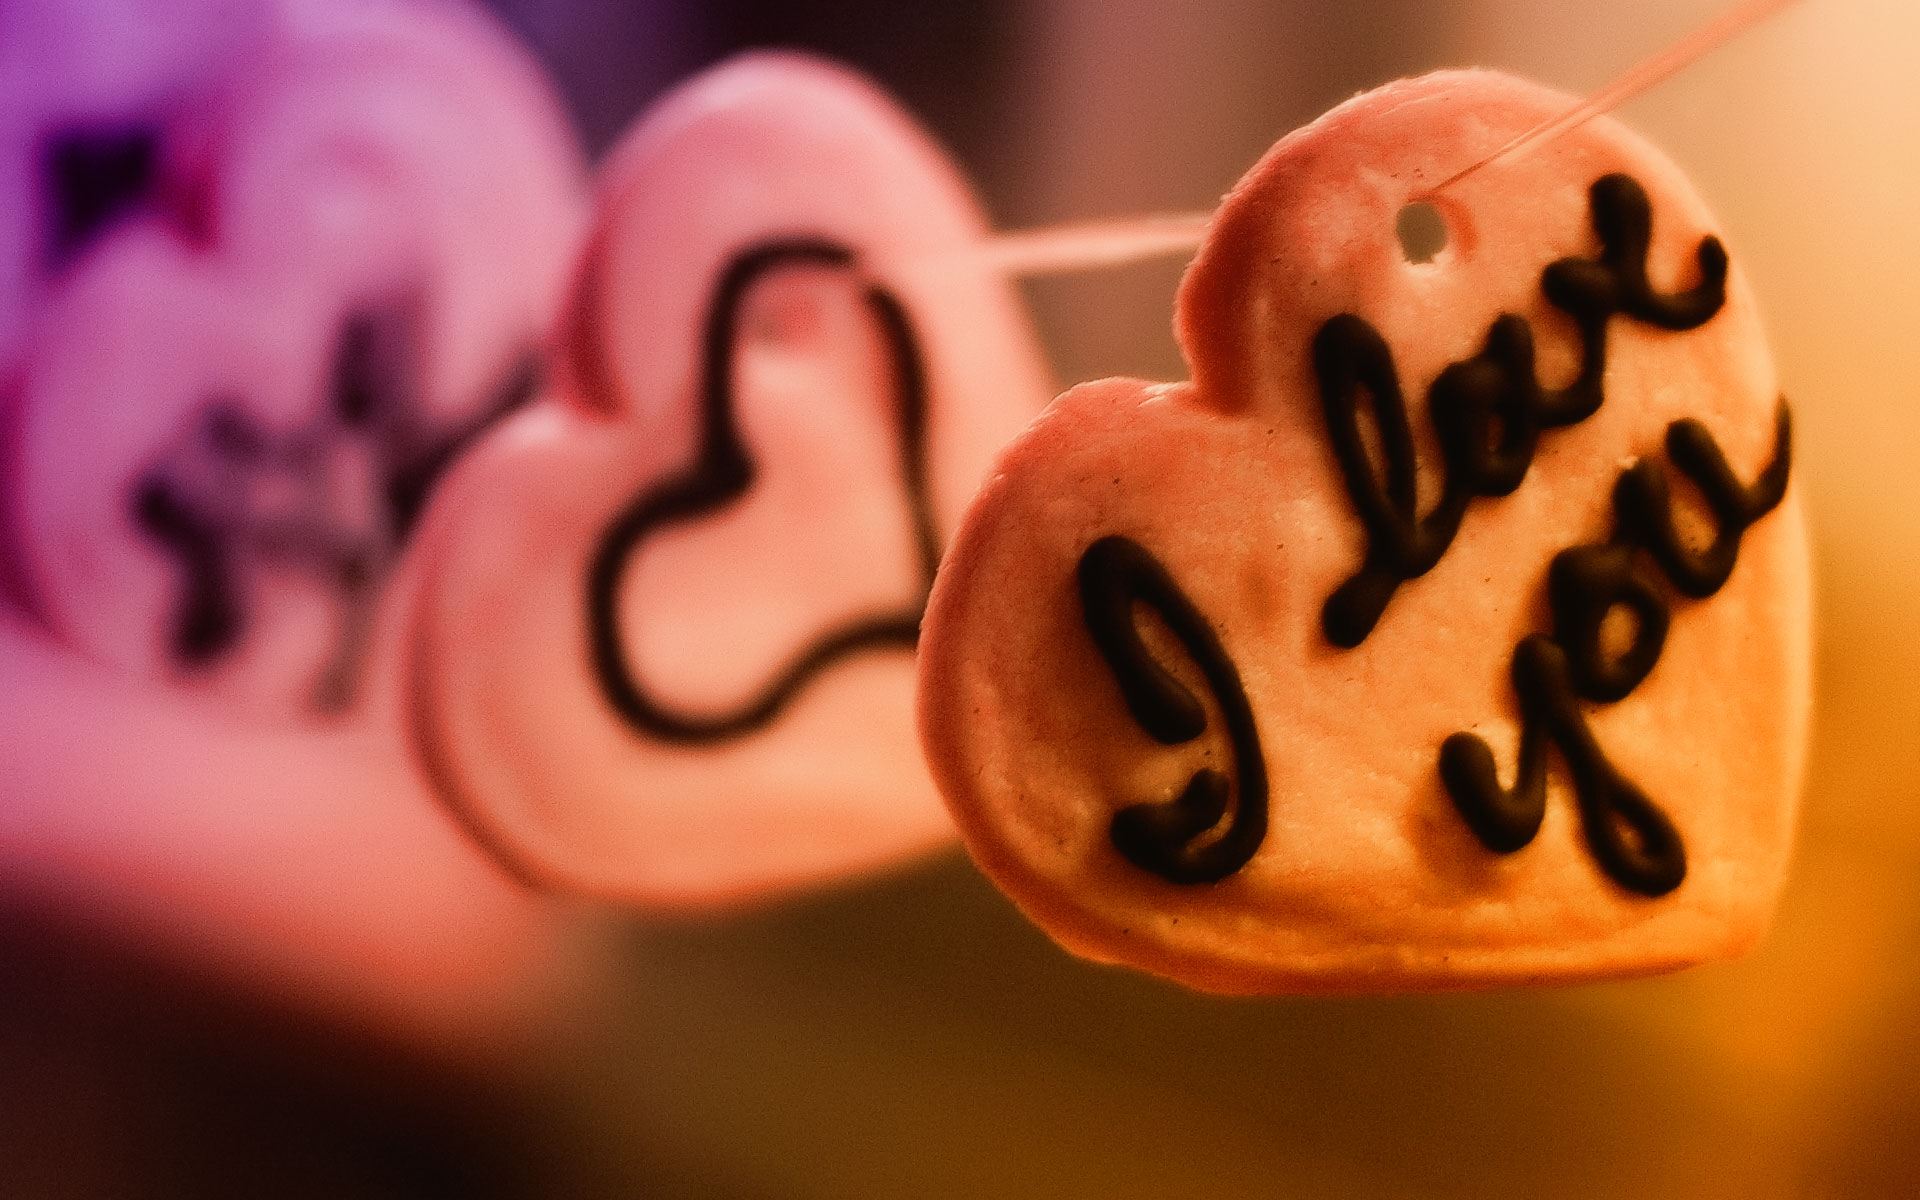 Love-Valentine-Day-Images